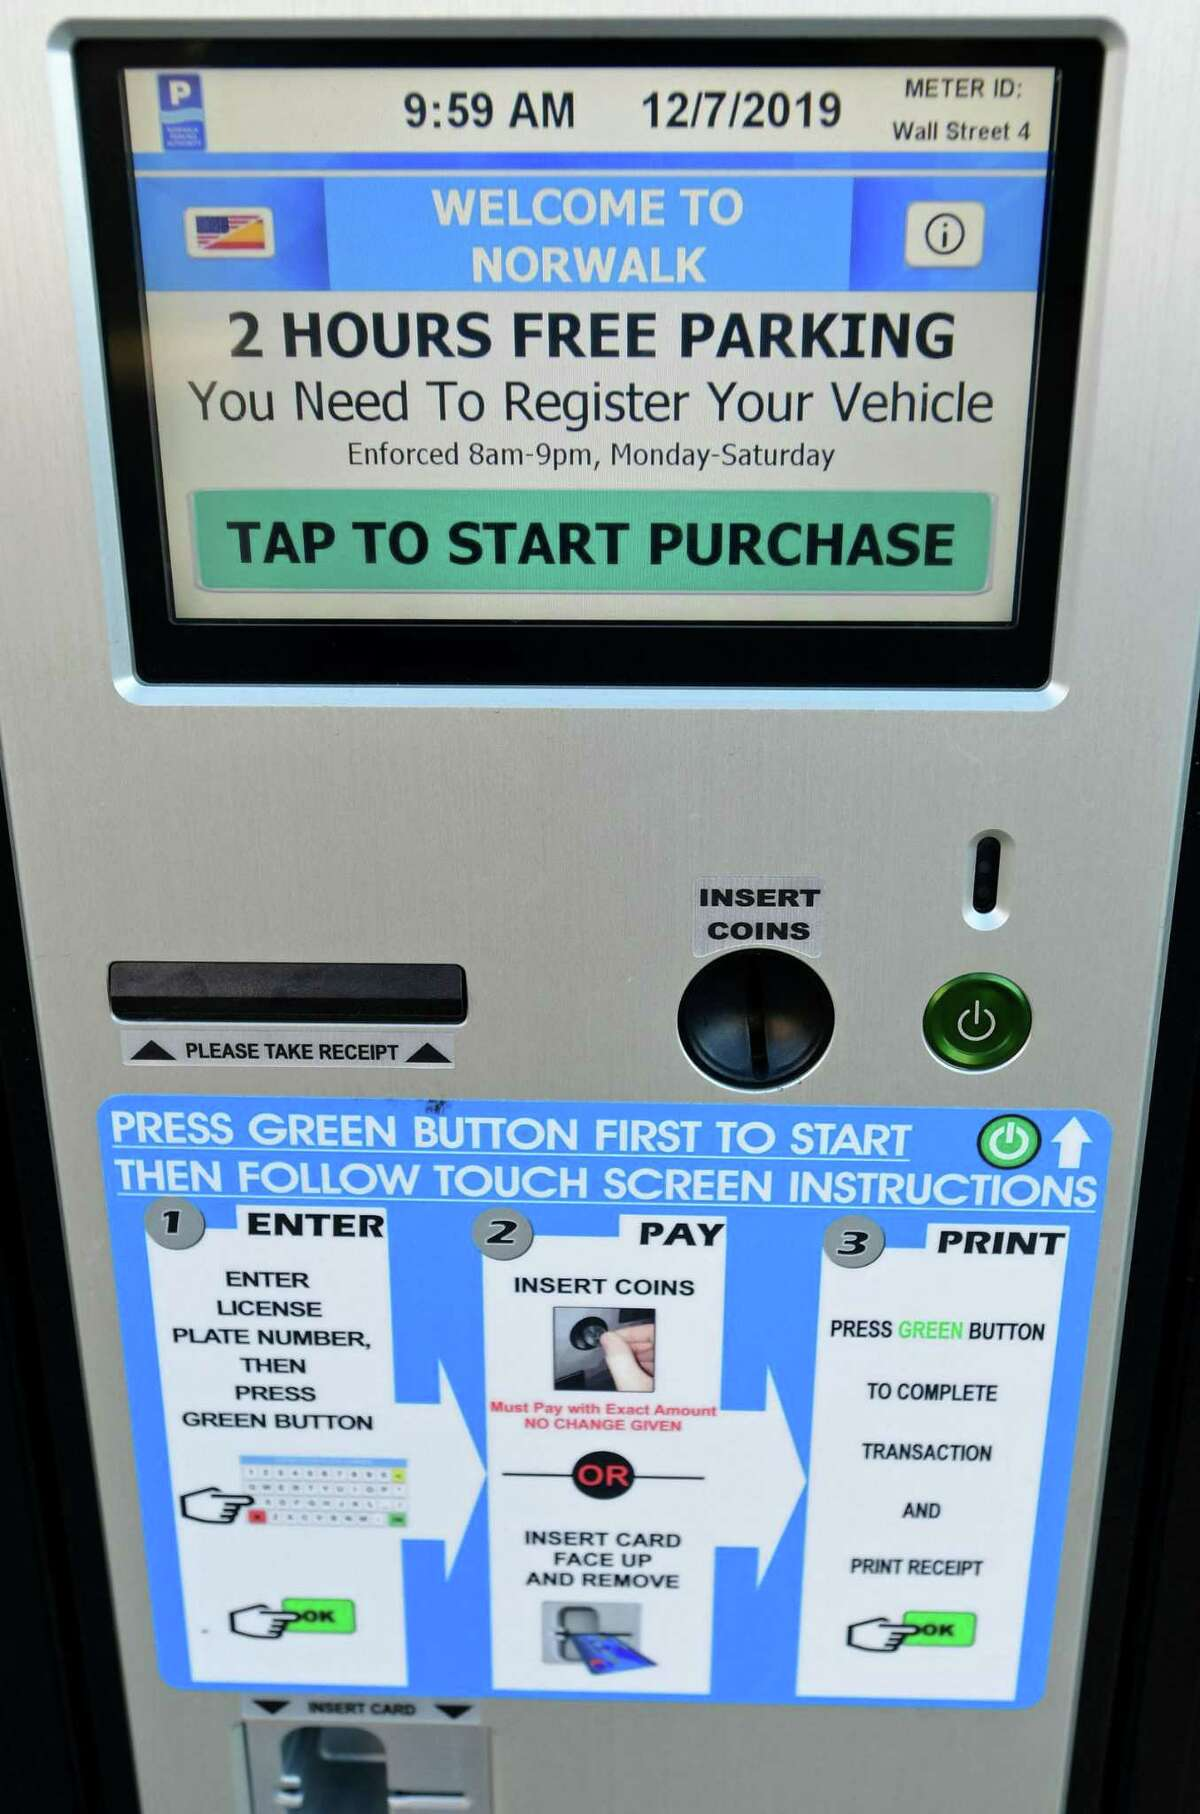 Parking kiosks stating free parking in the Wall Street area Saturday, December 7, 2019, in Norwalk, Conn. The city has suspended enforcement in the area until they can find a better solution for metered parking that will satisfy area businesses in the distict. The city has covered signs and to clarify parking is temporarily free and lines have been painted on High Street to delineate street parking within the Wall Street master parking plan.